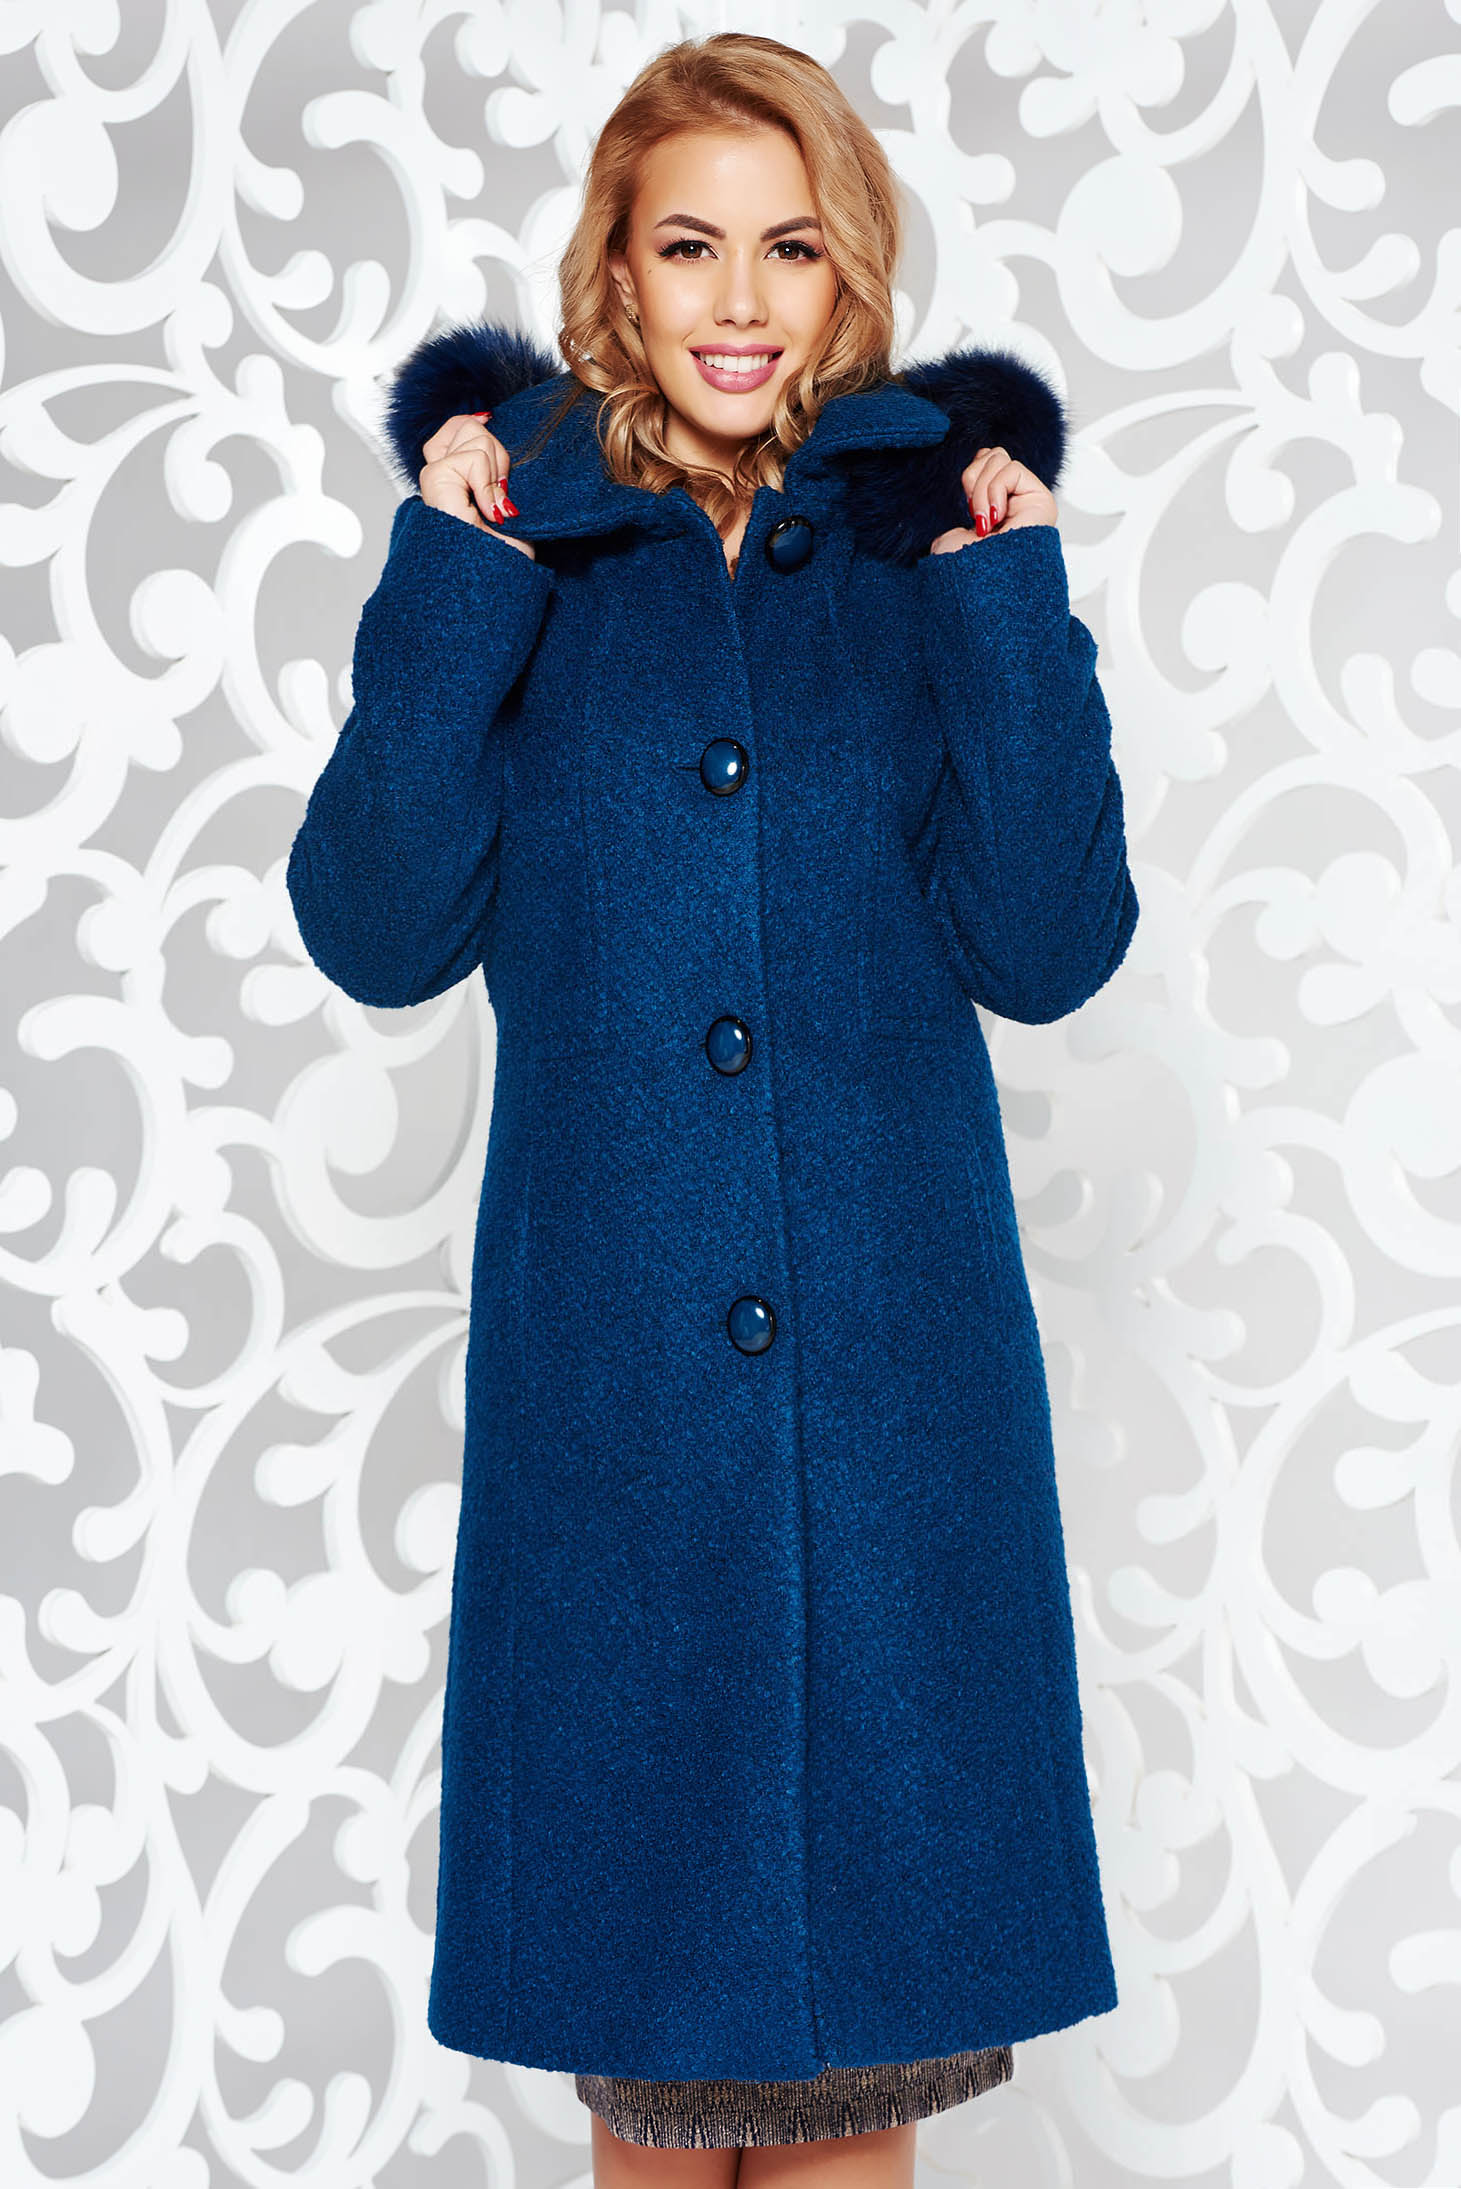 Turquoise elegant from wool coat with straight cut with inside lining detachable hood